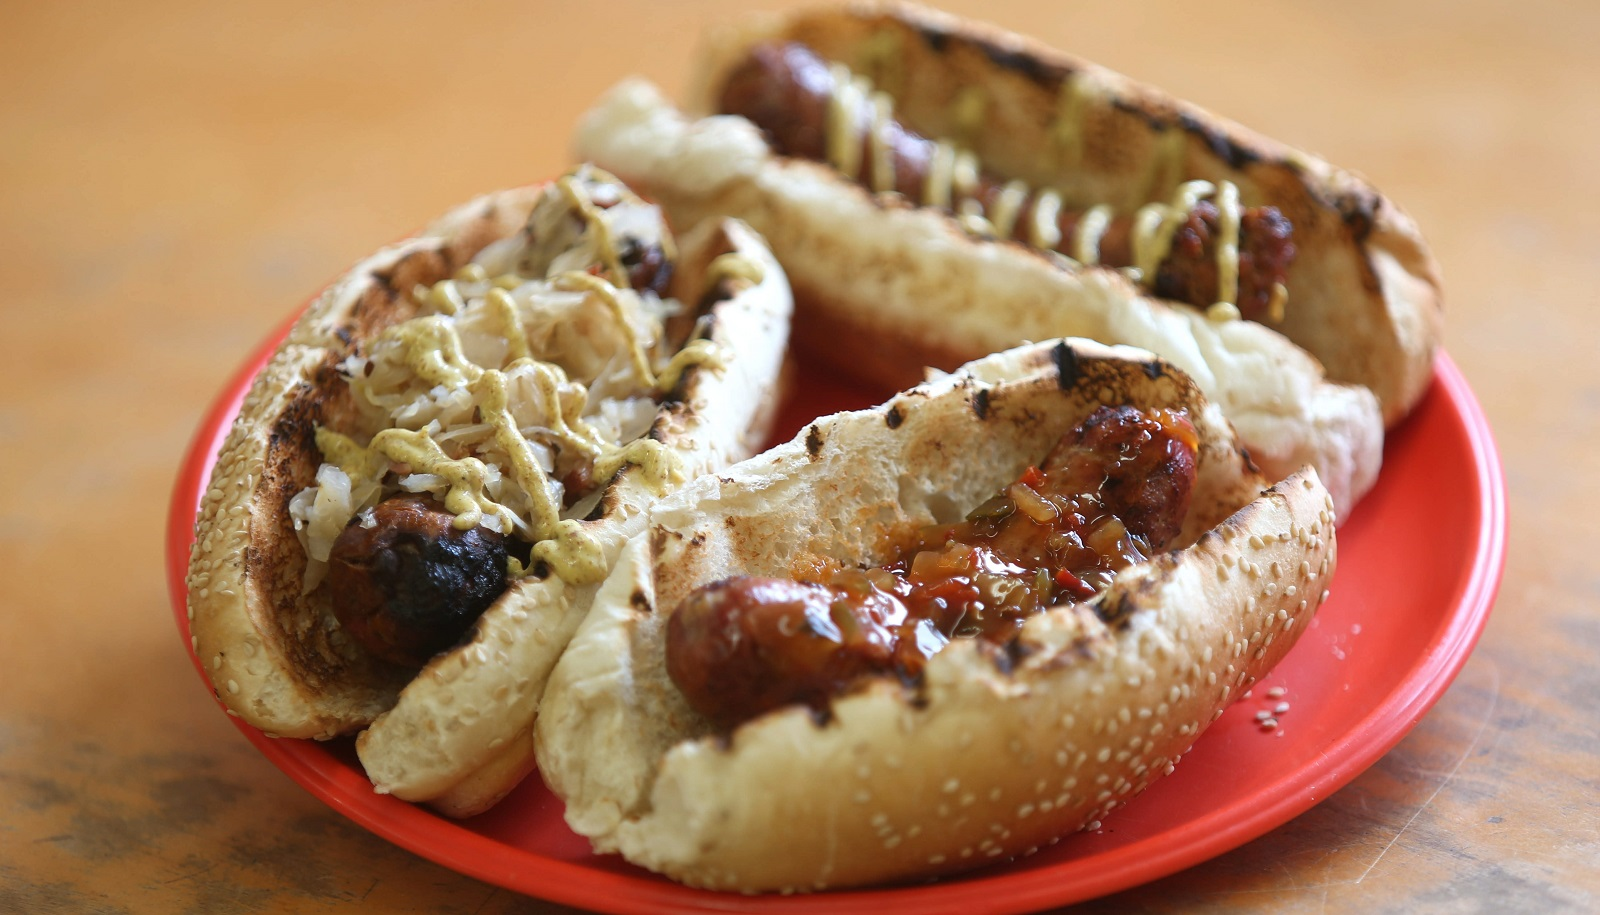 Spar's European Sausage and Meats will be paired with beer at Mr. Goodbar. (Robert Kirkham/Buffalo News file photo)